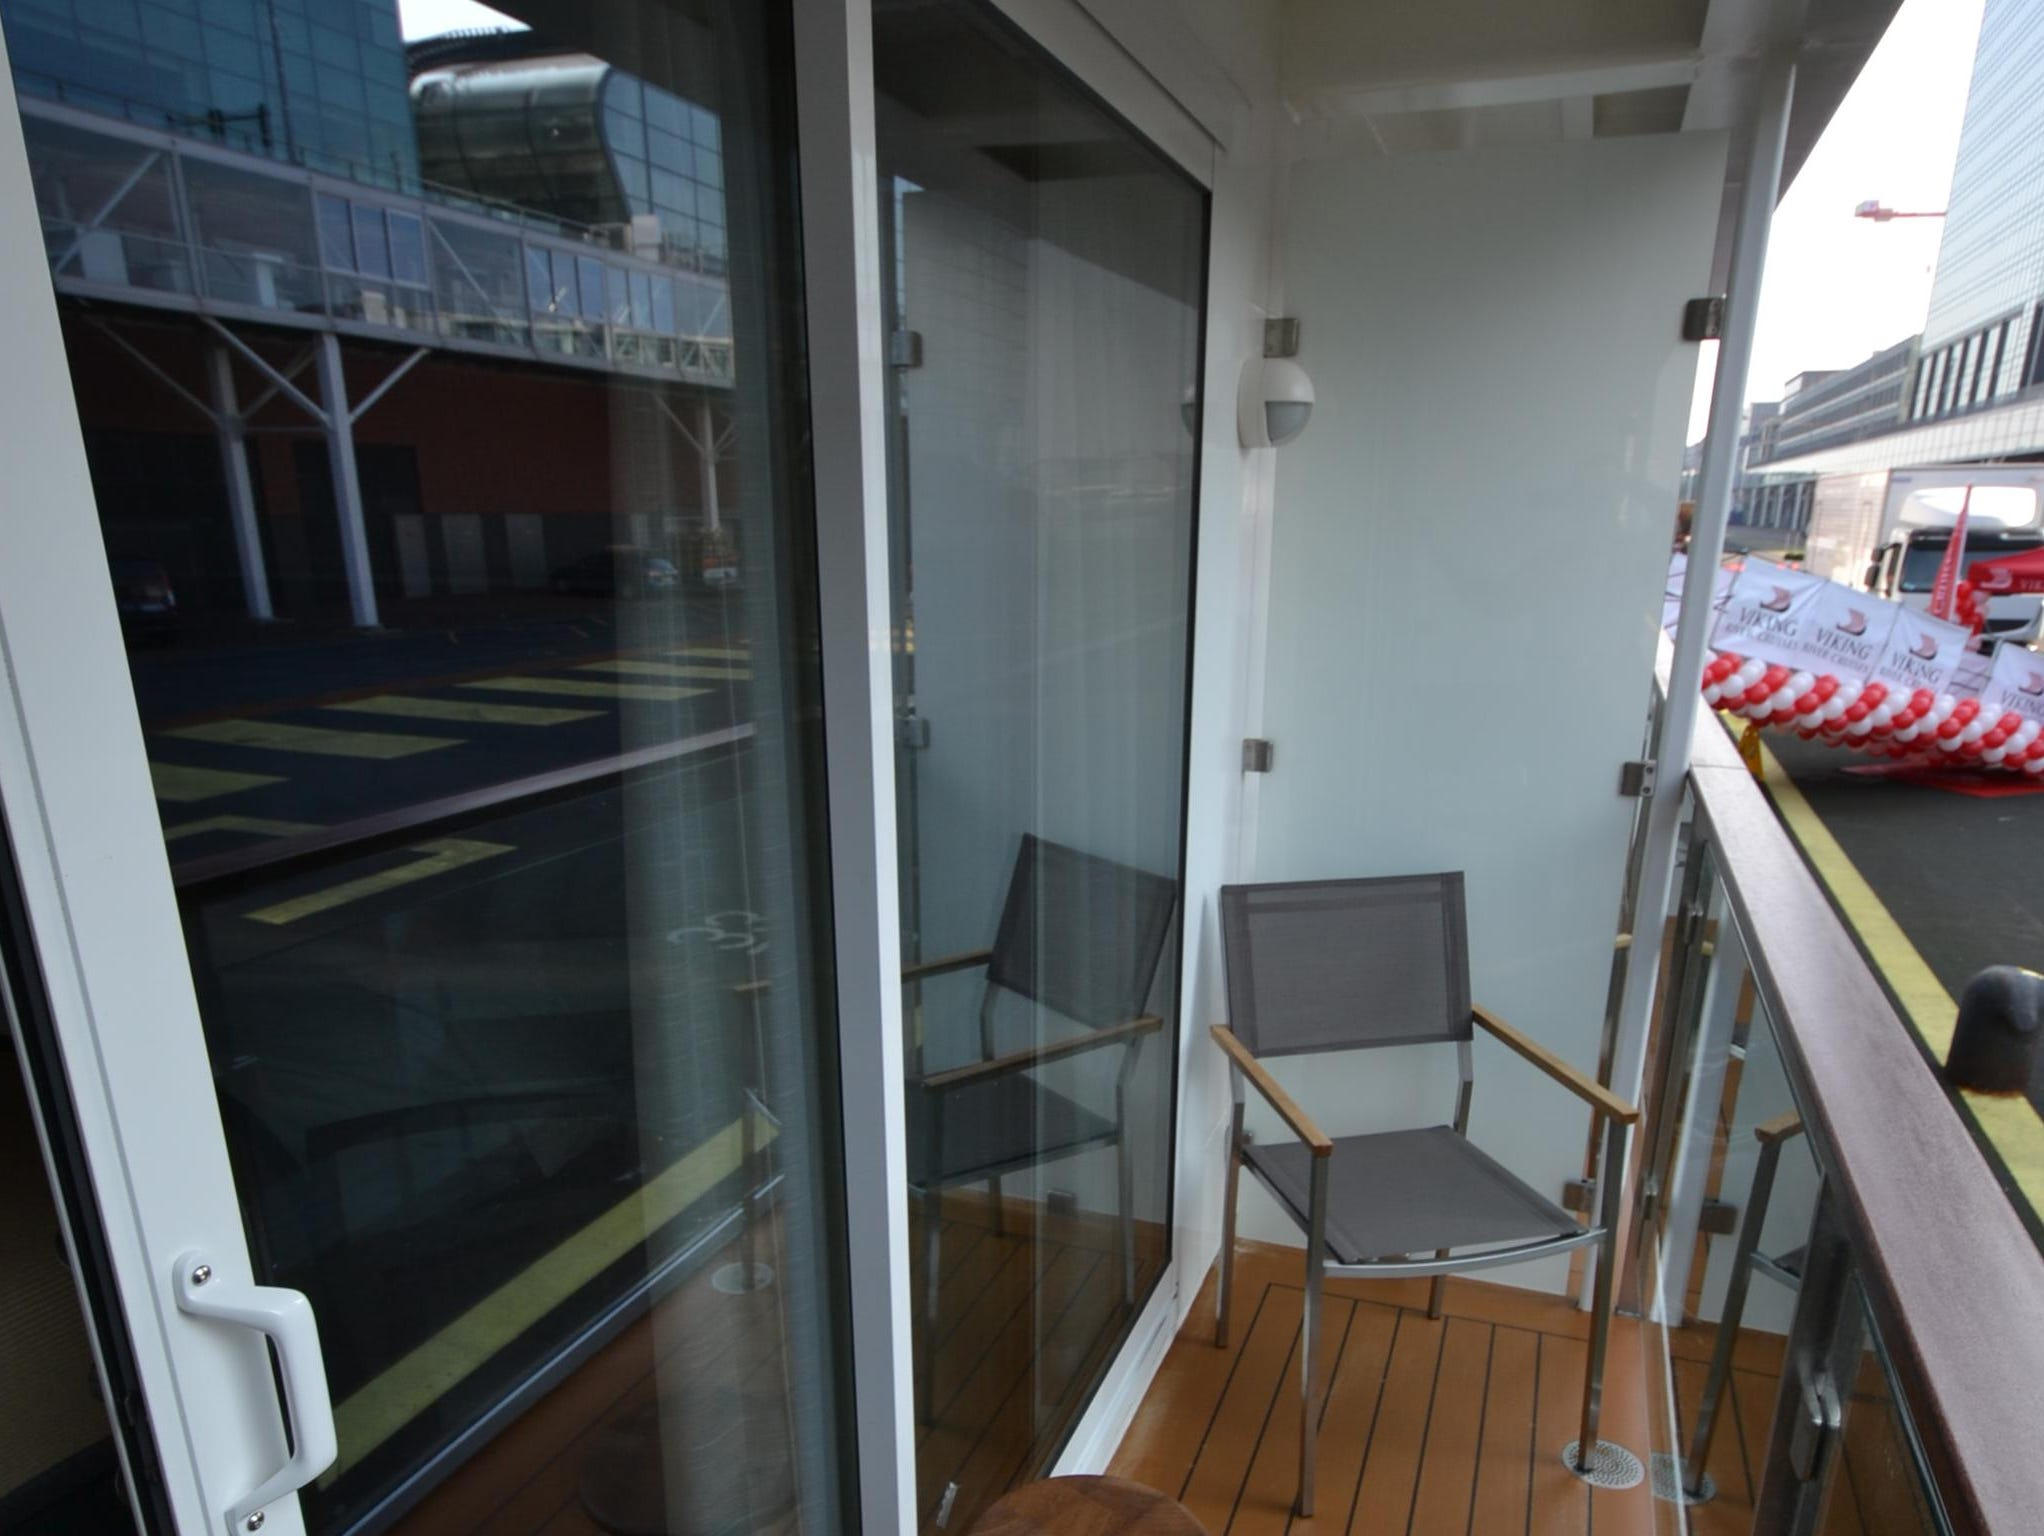 Dubbed Veranda Staterooms, the balcony cabins have a balcony big enough for two chairs and a small wooden table.